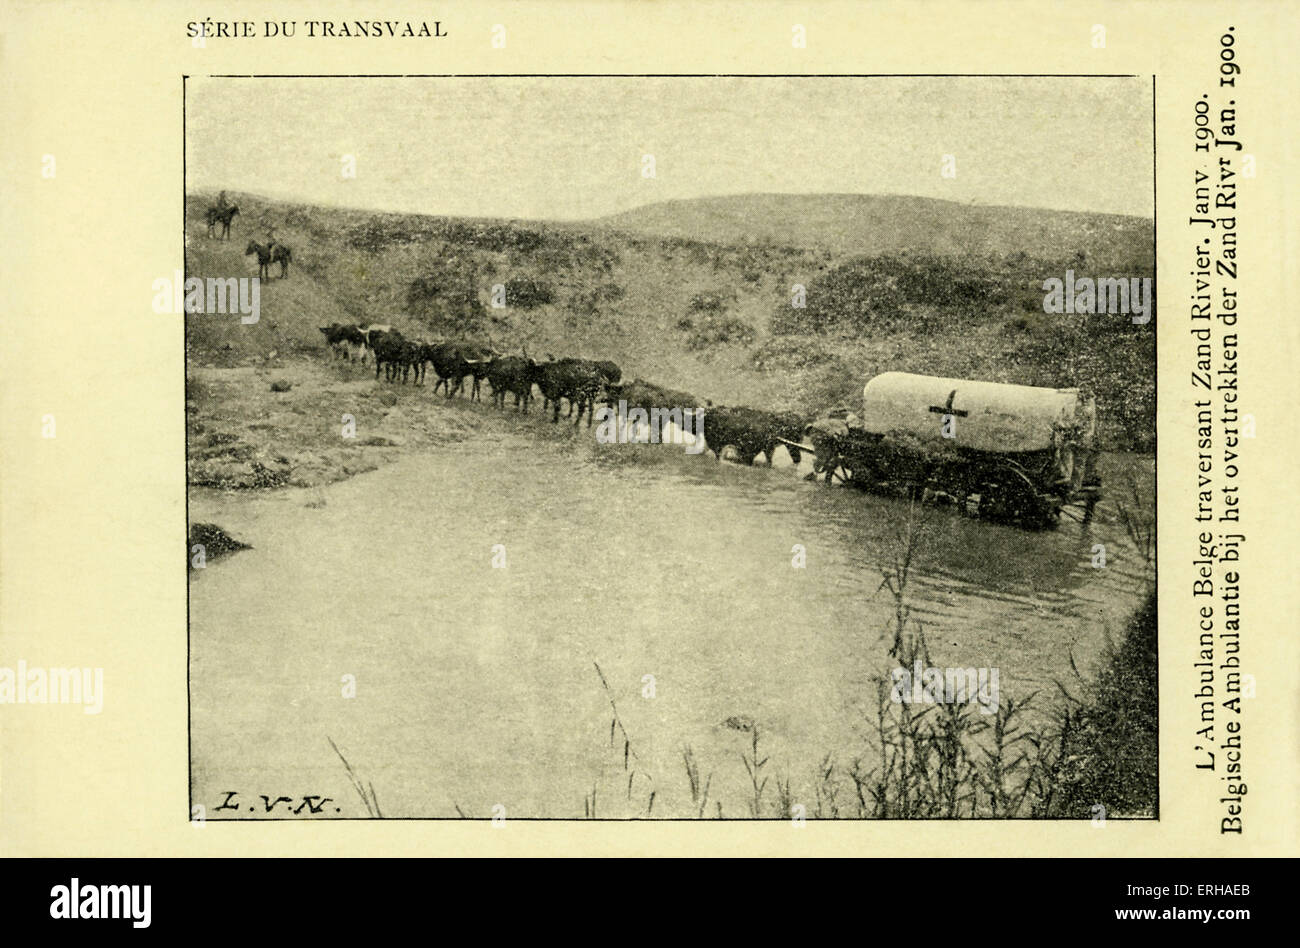 Belgian ambulance crossing the Zand river, during the Second Boer War (1899-1902). Caption reads 'L'Amulance - Stock Image